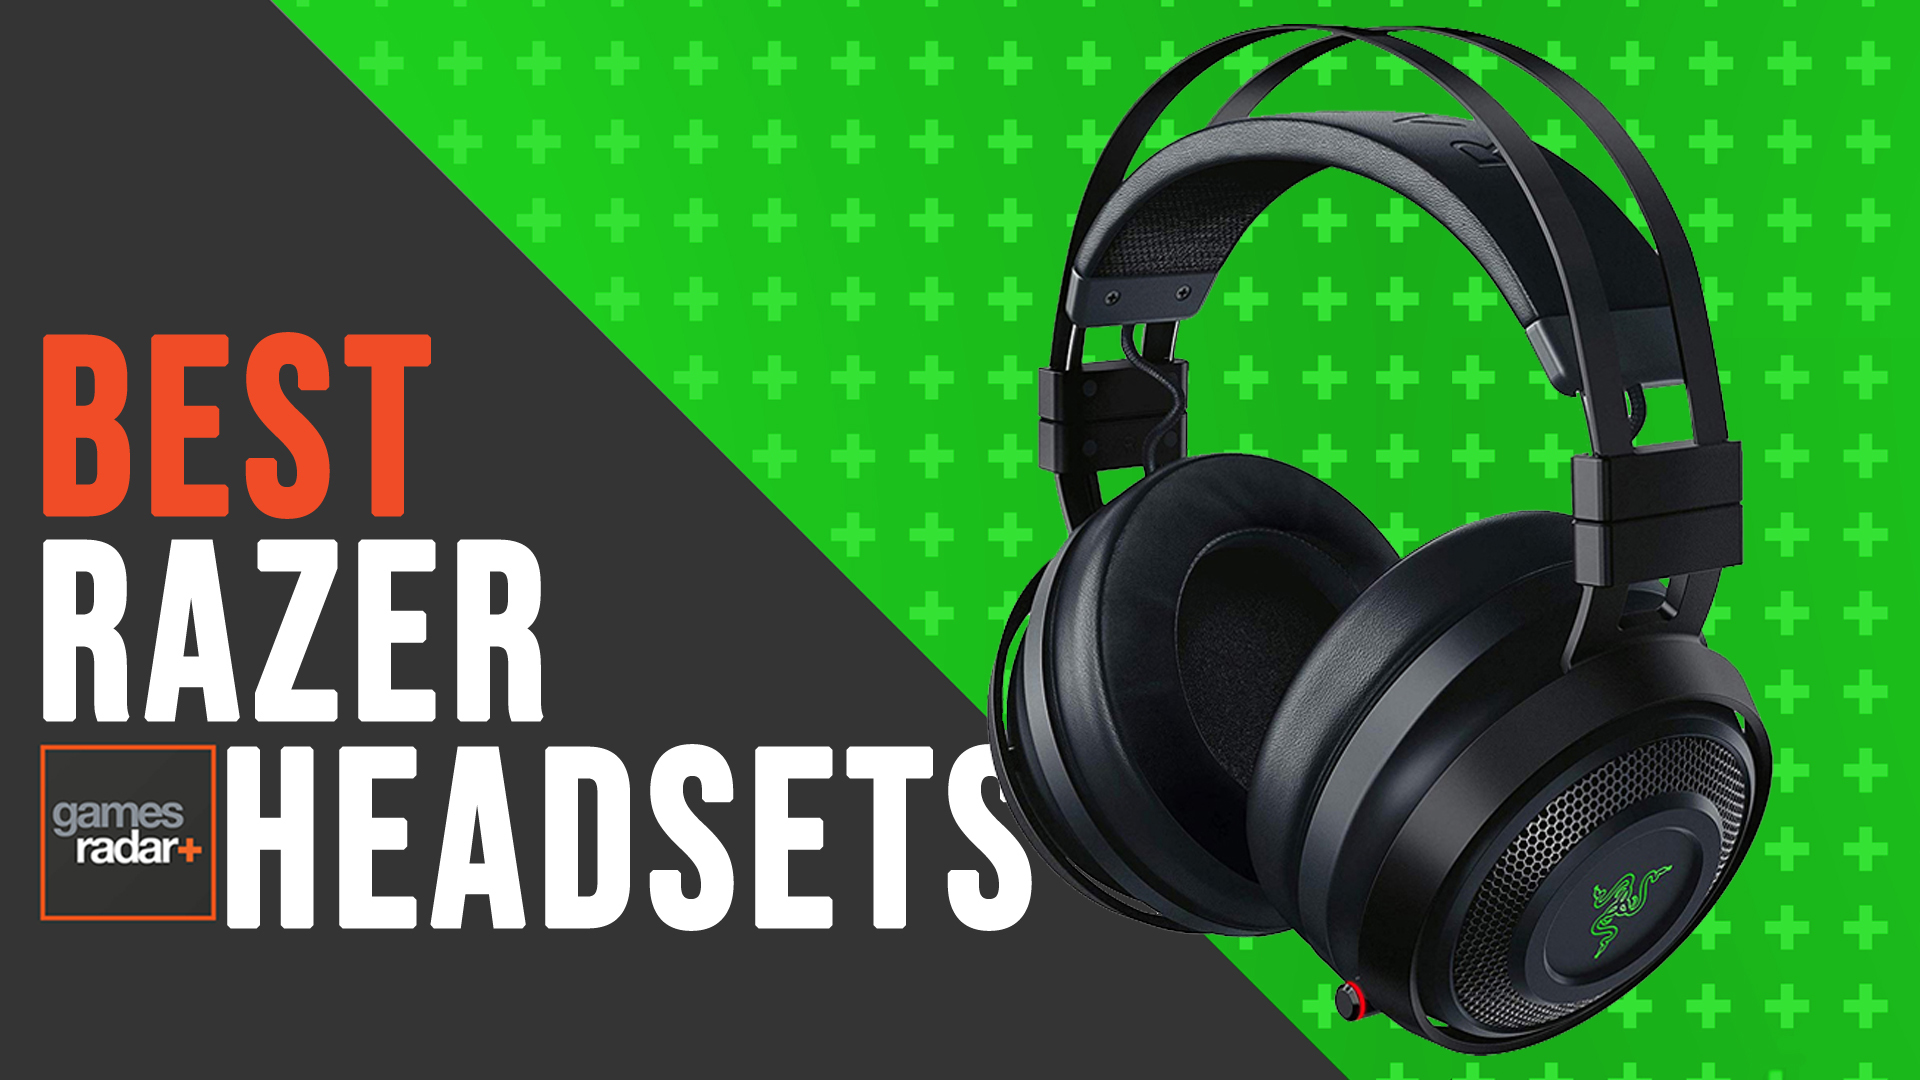 Best Razer Headsets 2020 Our Best Audio Picks From One Of Gaming S Hottest Brands Gamesradar